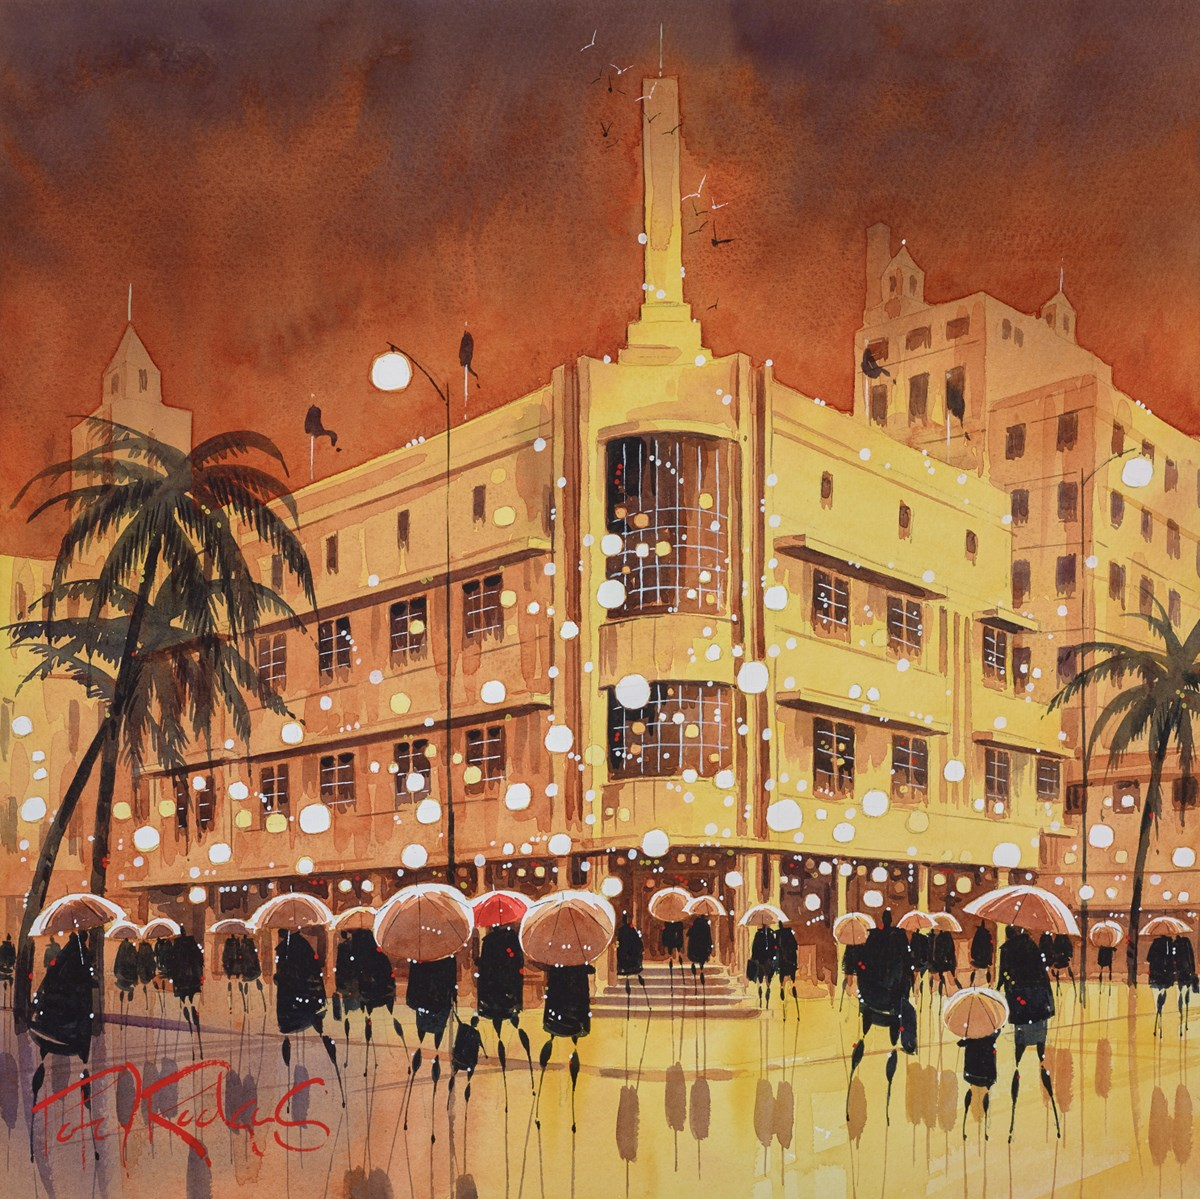 Deco Reflections by peter j rodgers -  sized 20x21 inches. Available from Whitewall Galleries